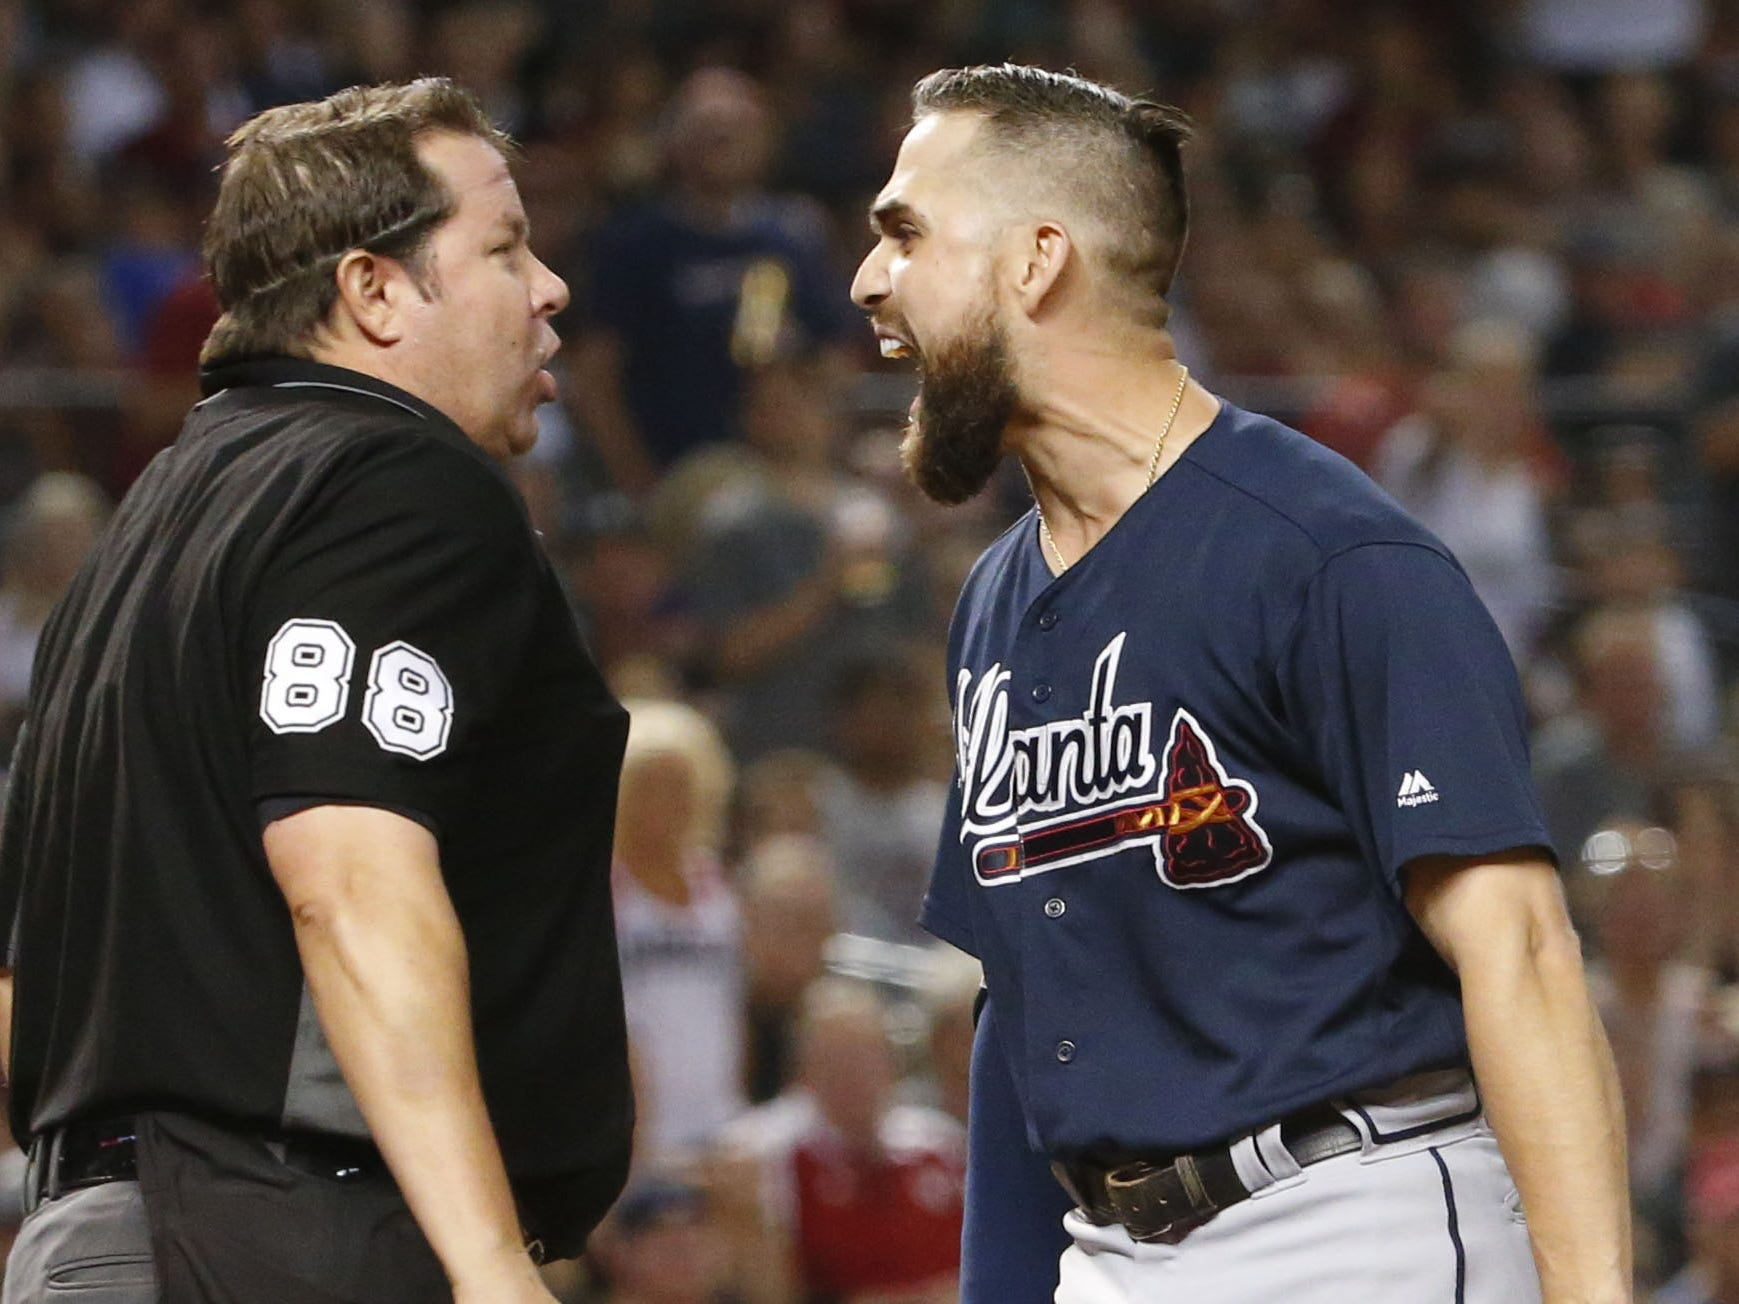 Umpire Doug Eddings (88) tosses Atlanta Braves center fielder Ender Inciarte (11) for arguing balls and strikes during a MLB game against the Arizona Diamondbacks at Chase Field in Phoenix on September 7, 2018.